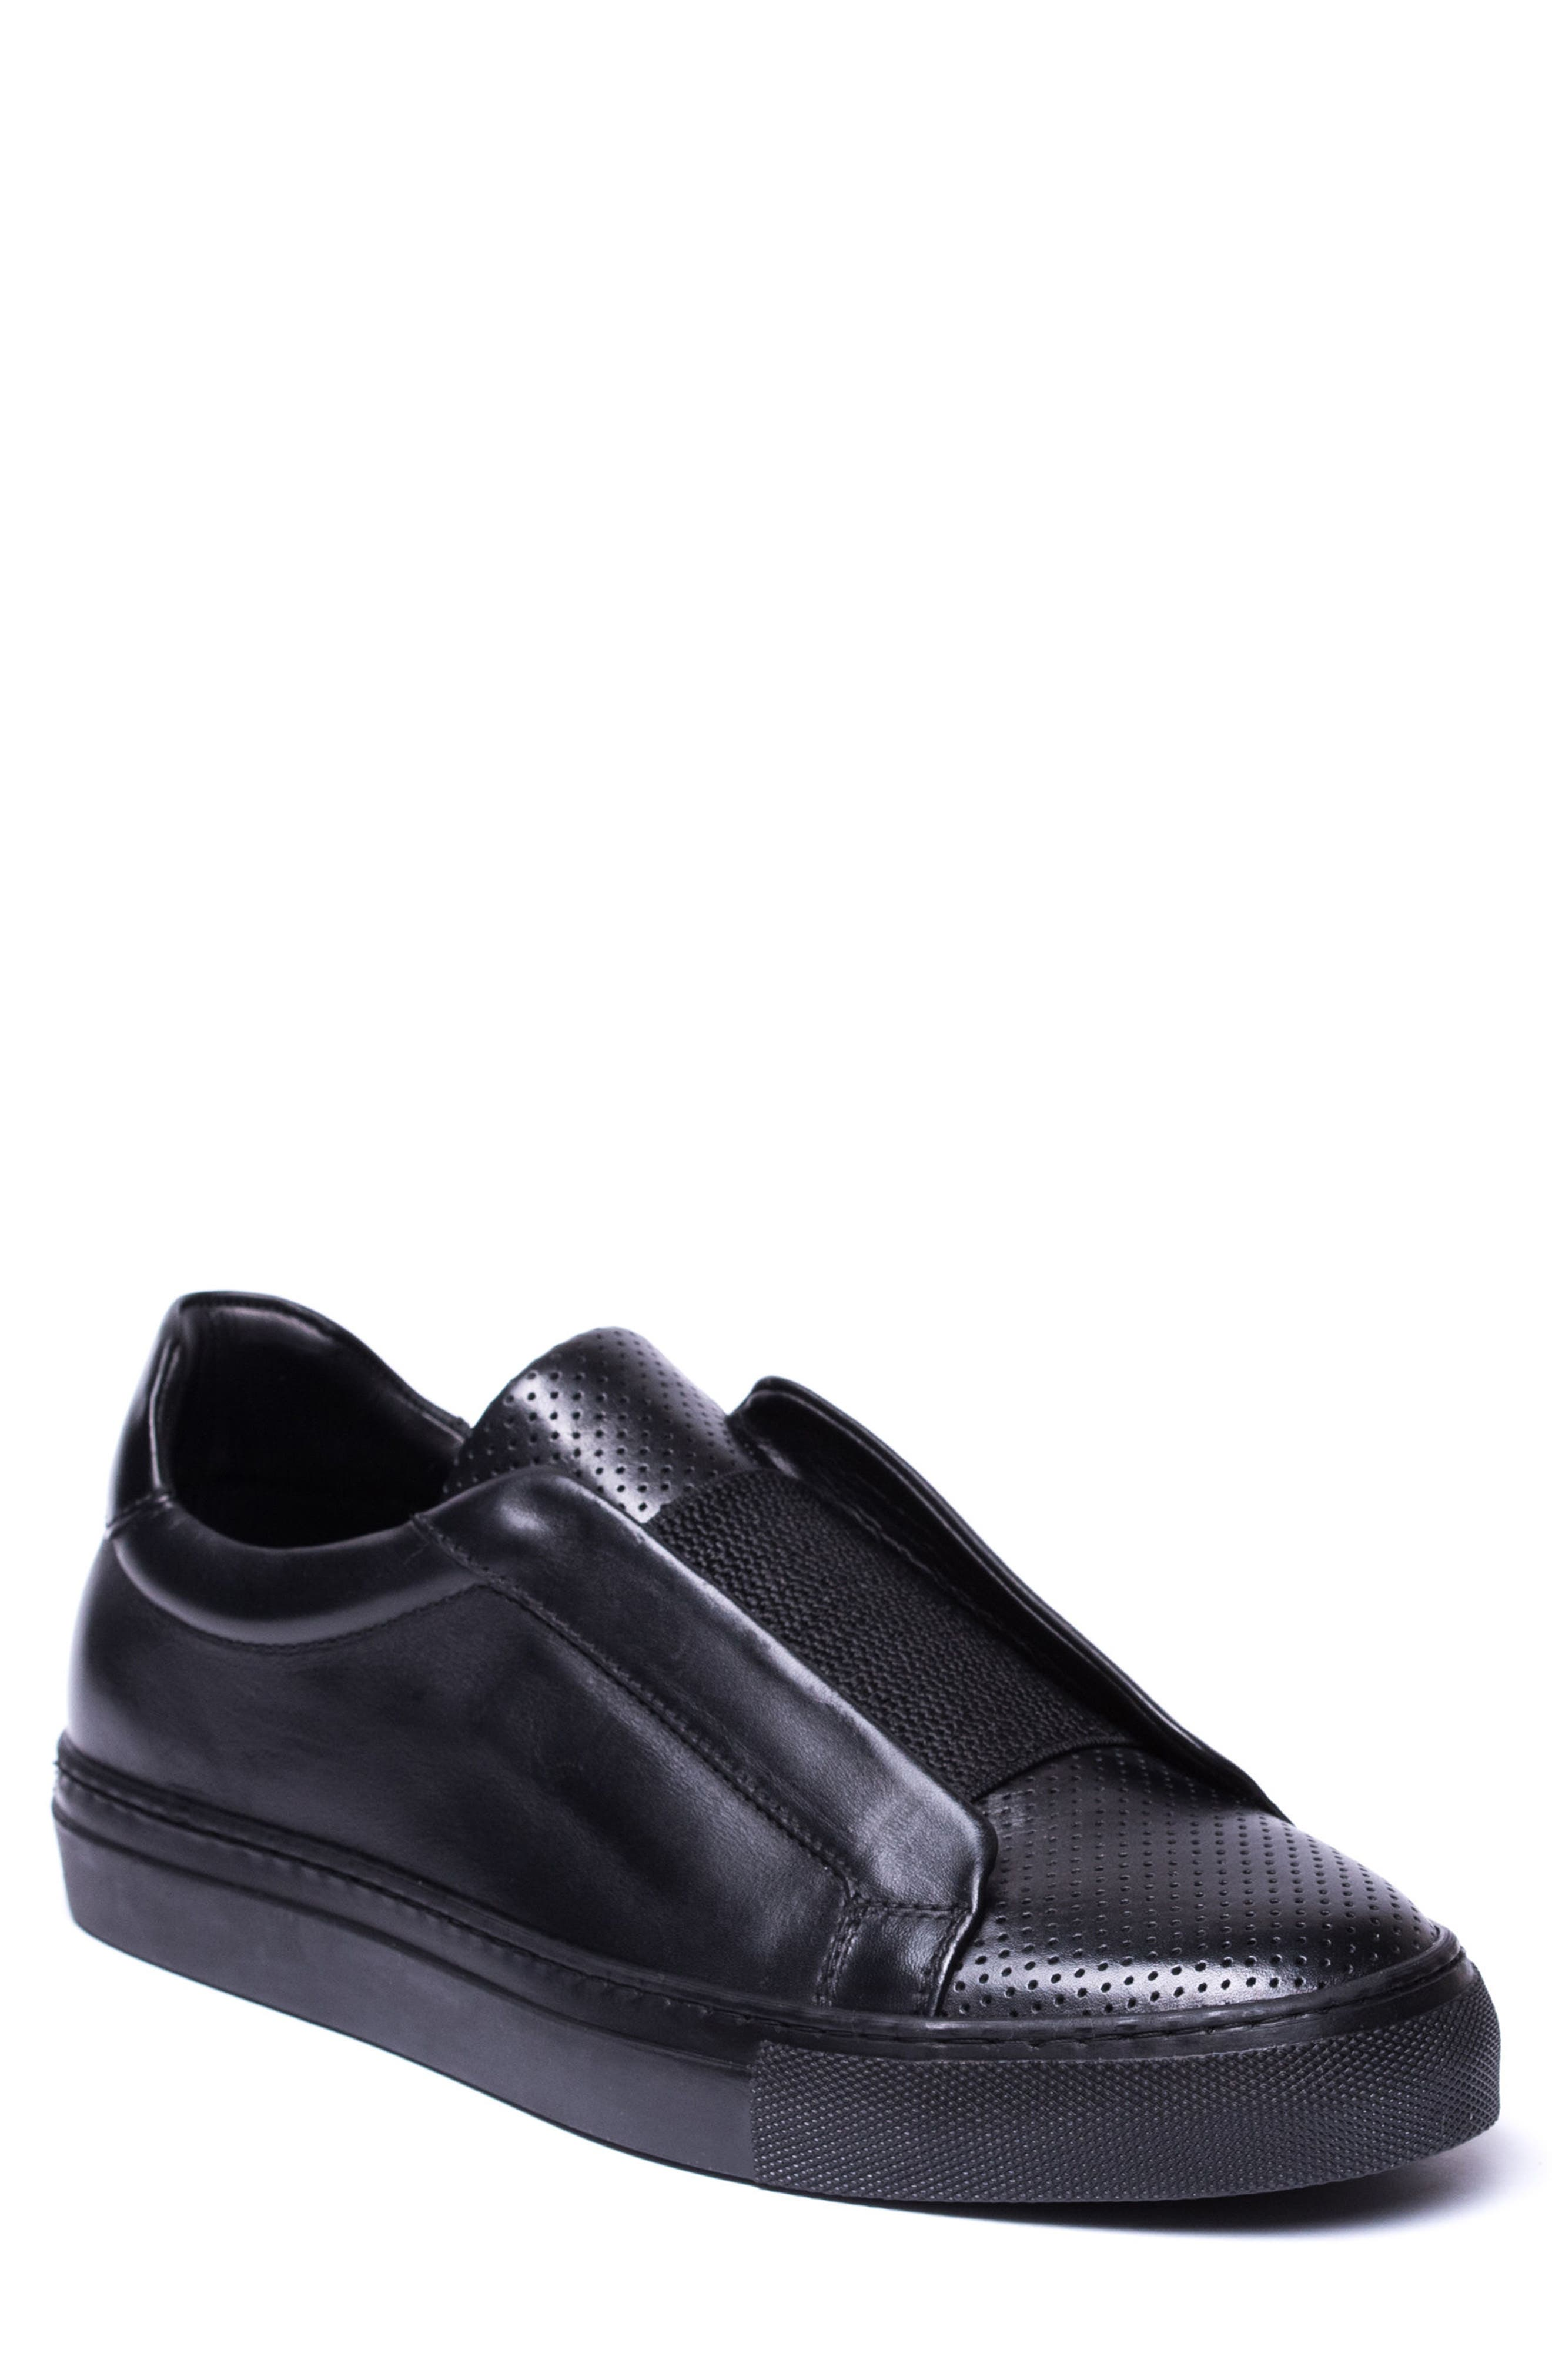 Mane Laceless Perforated Sneaker,                             Main thumbnail 1, color,                             Black Leather